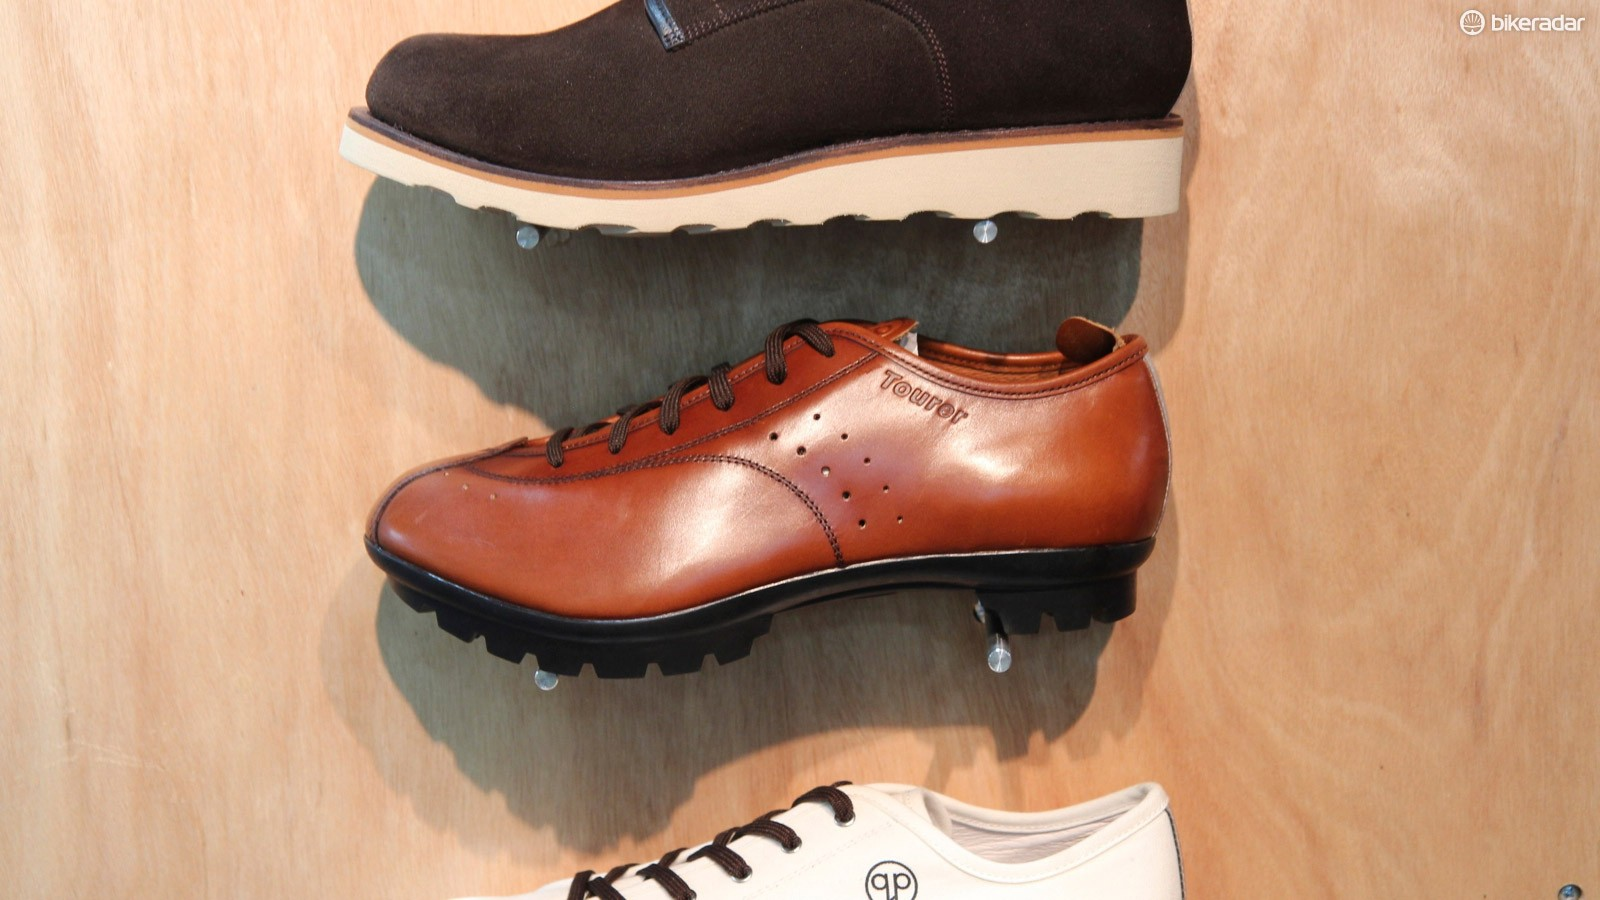 Quoc Pham shoes are available in Europe and North America